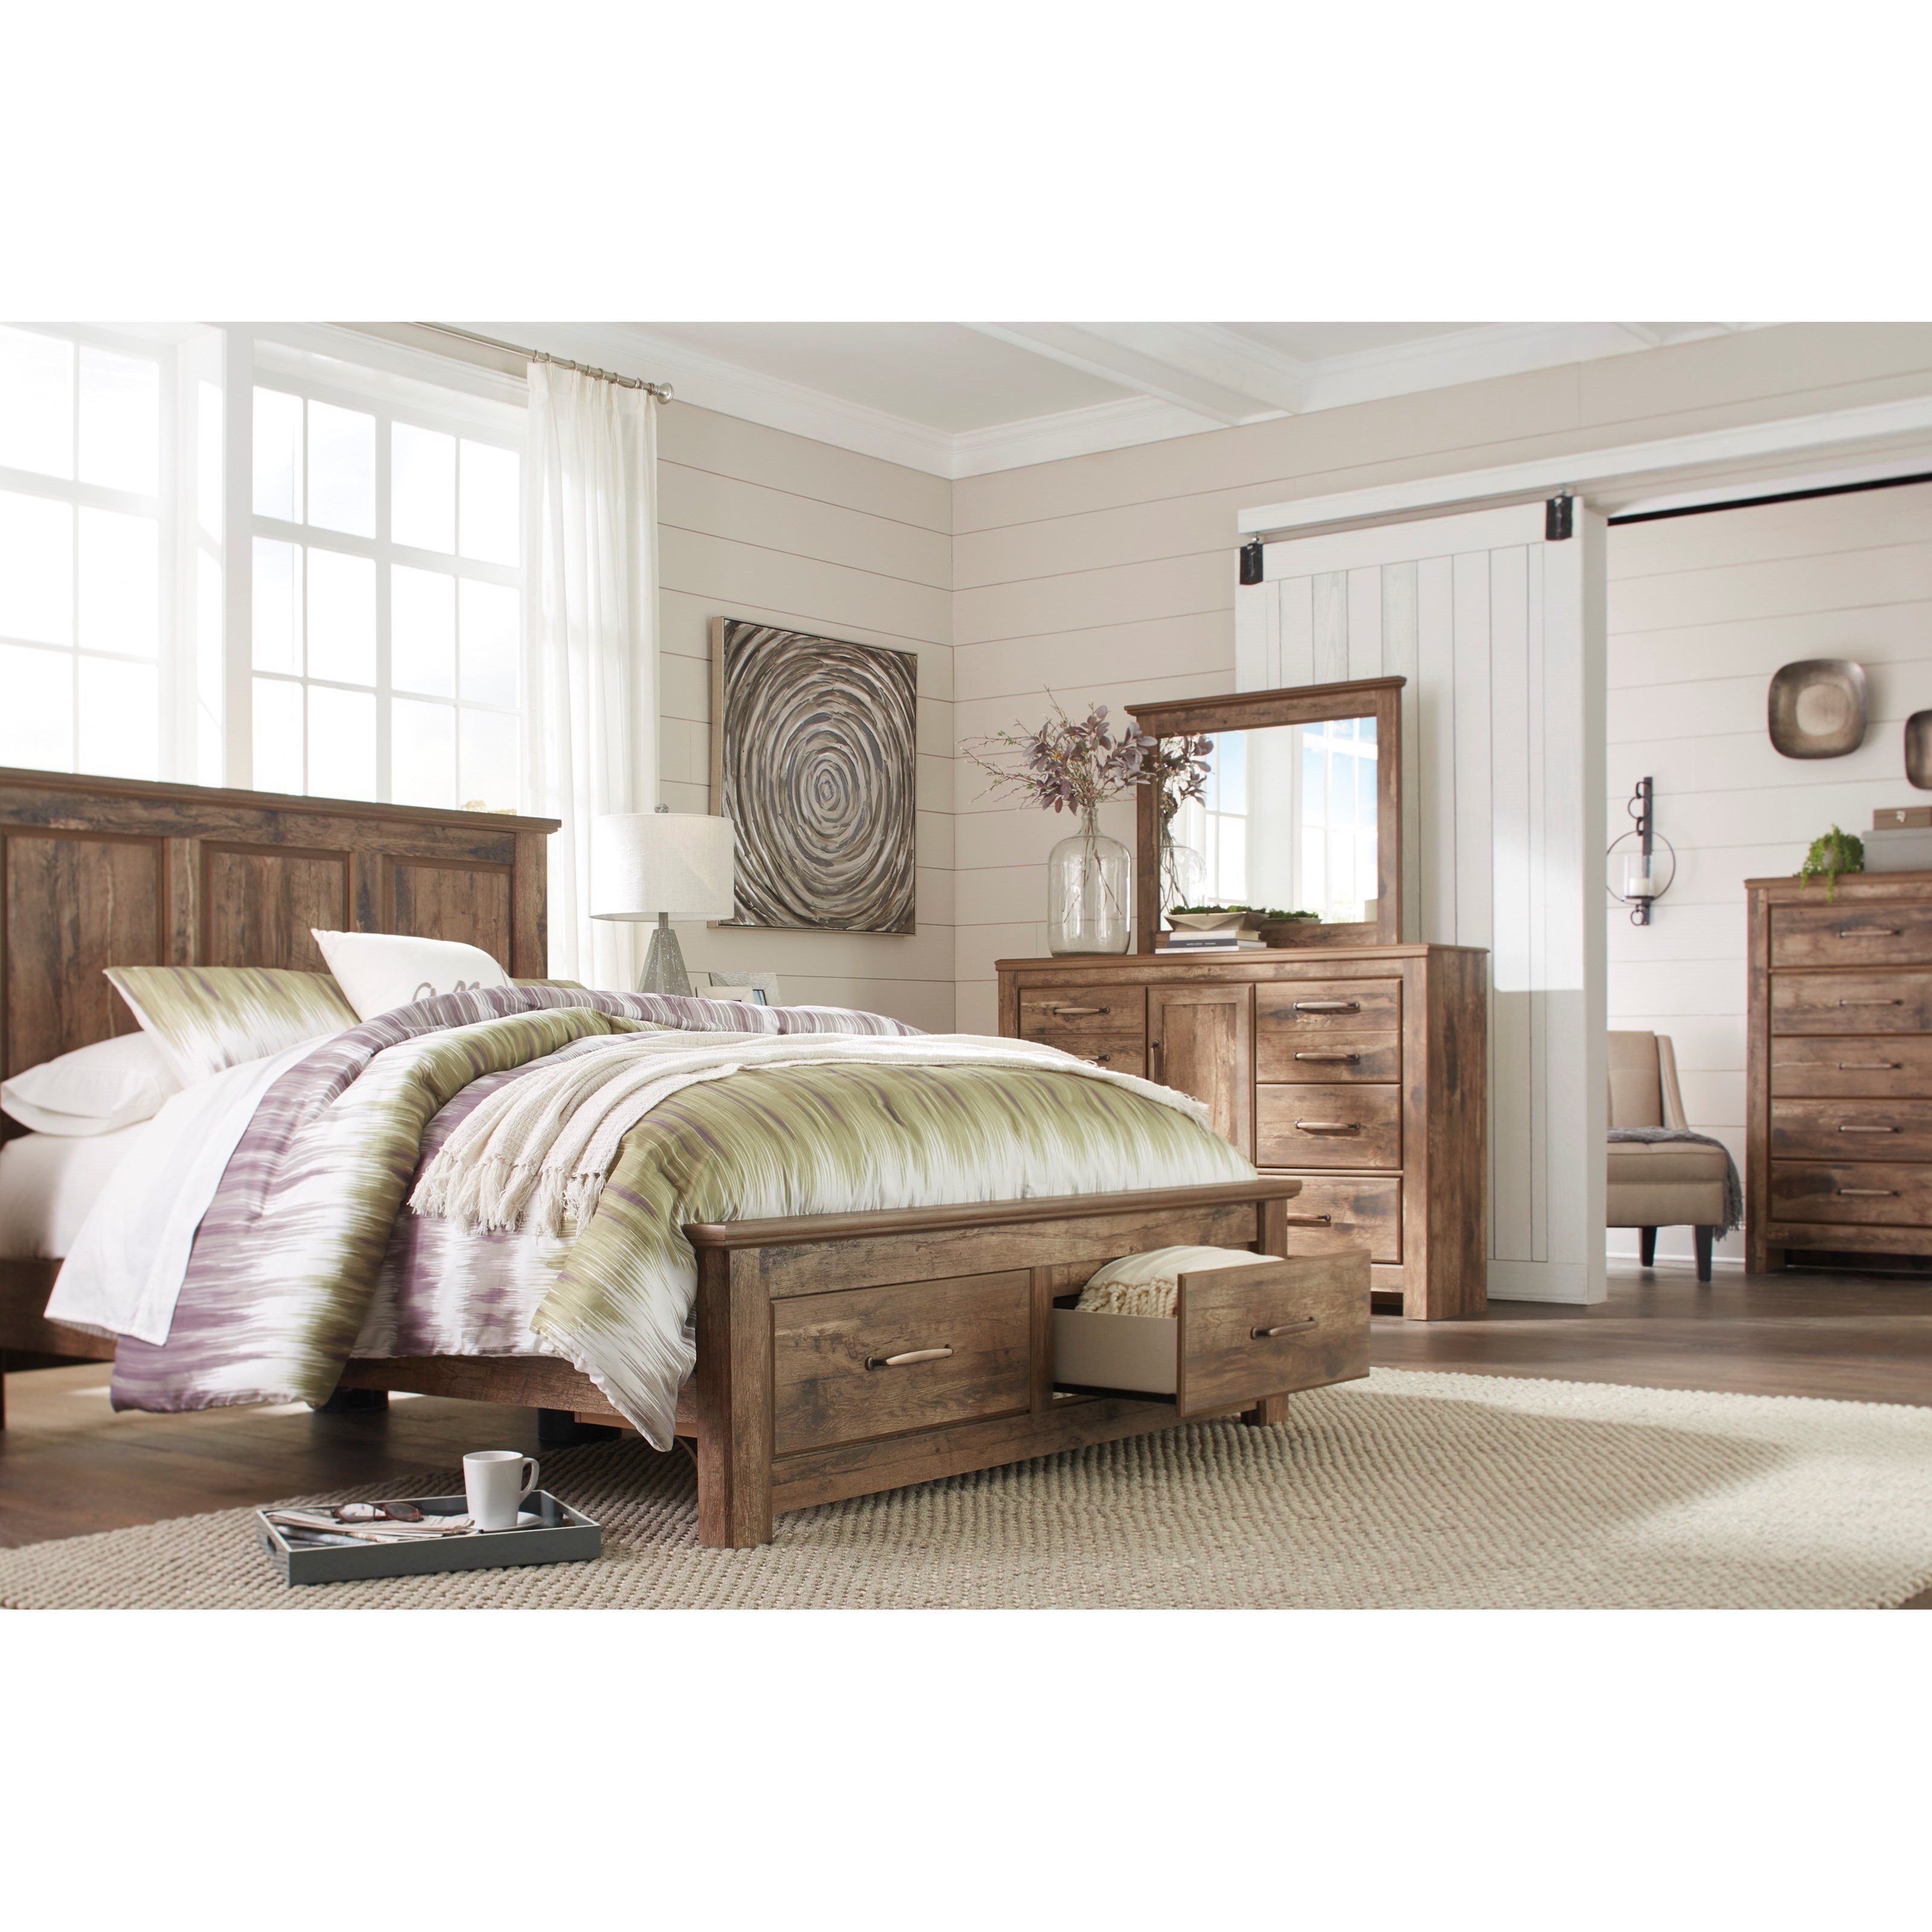 Signature Design By Ashley Blaneville Rustic Style Queen Panel Storage Bed Furniture And